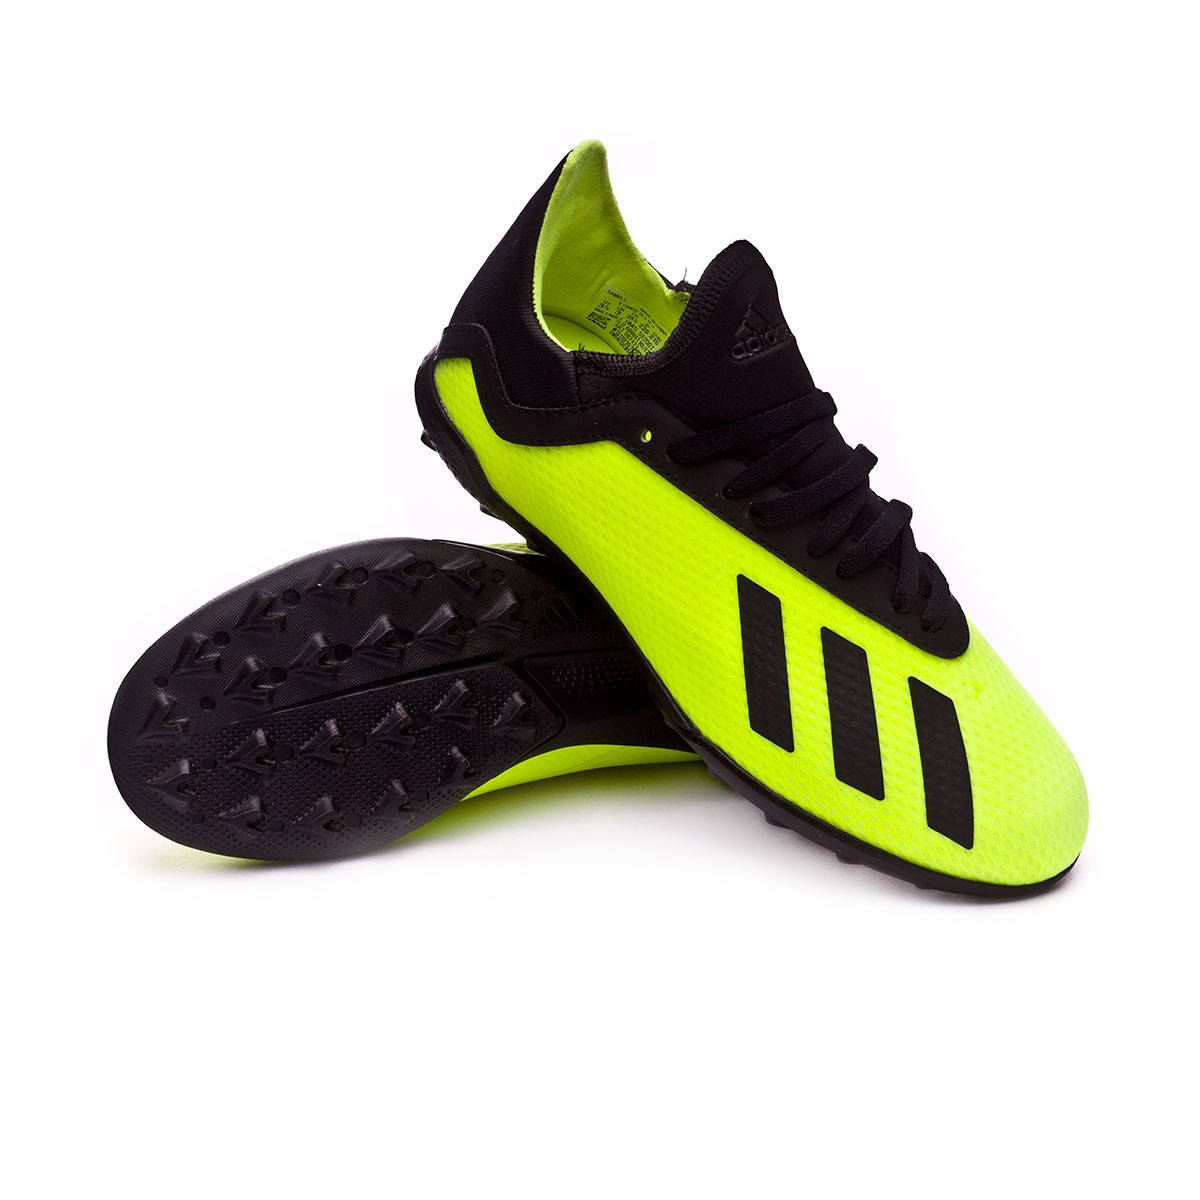 3674d0f59f6d adidas Kids X Tango 18.3 Turf Football Boot. Solar yellow-Core black-Solar  ...